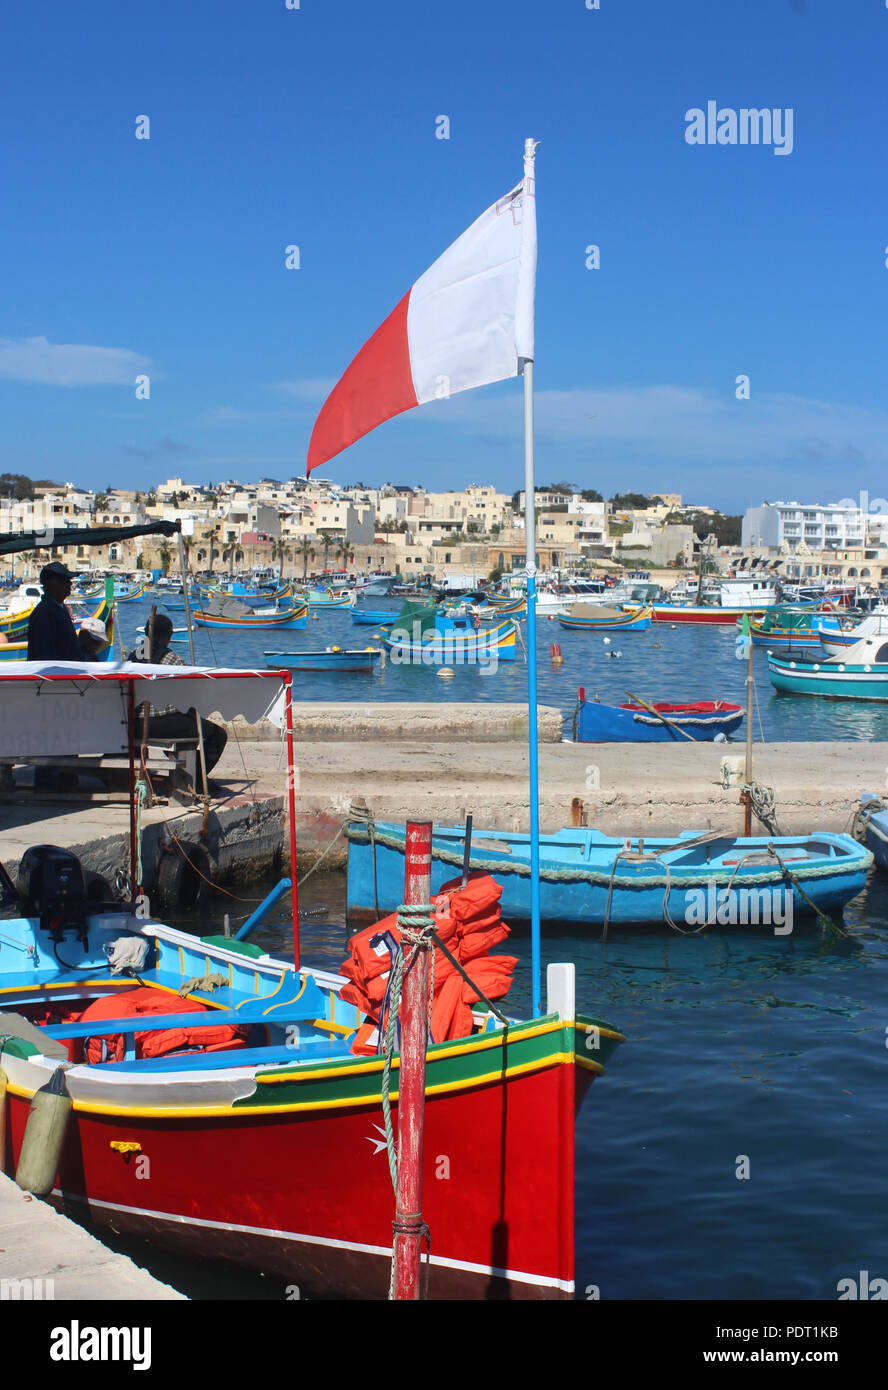 colorful traditional fishing boat with Maltese flag in Marsaxlokk, Malta, a fishers village - Stock Image